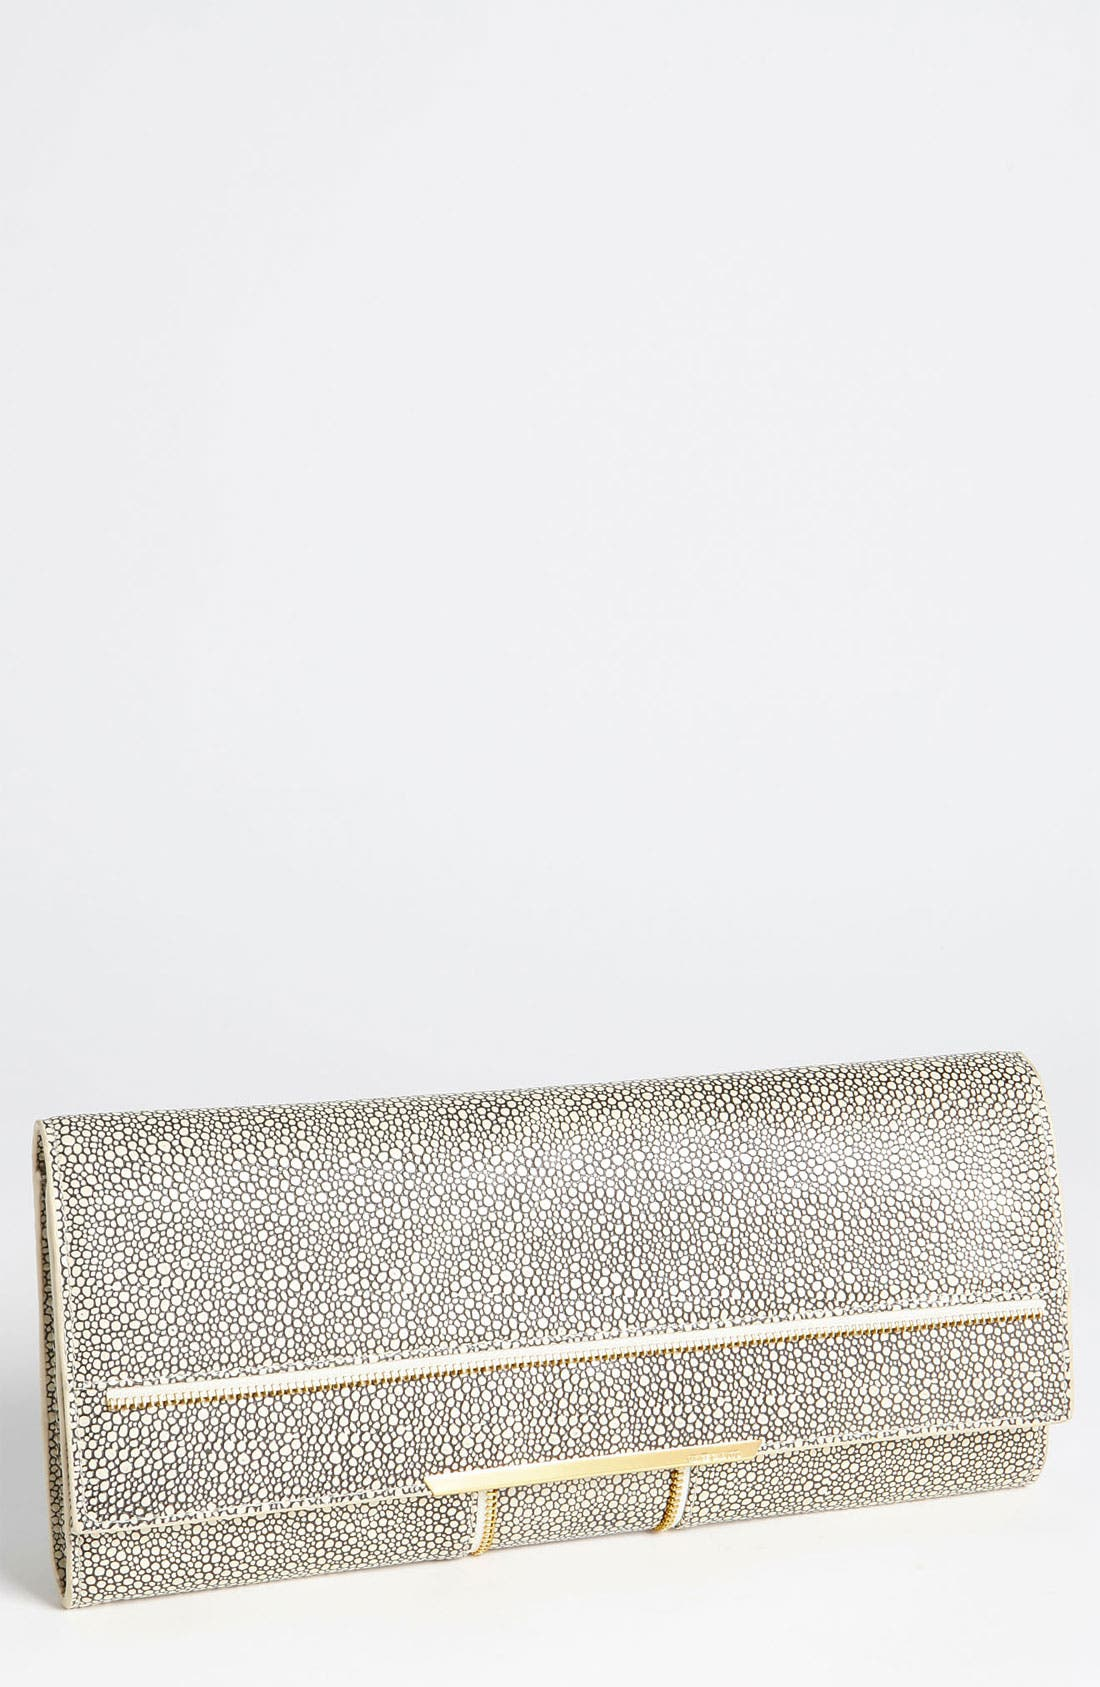 Alternate Image 1 Selected - Vince Camuto 'Nora' Clutch